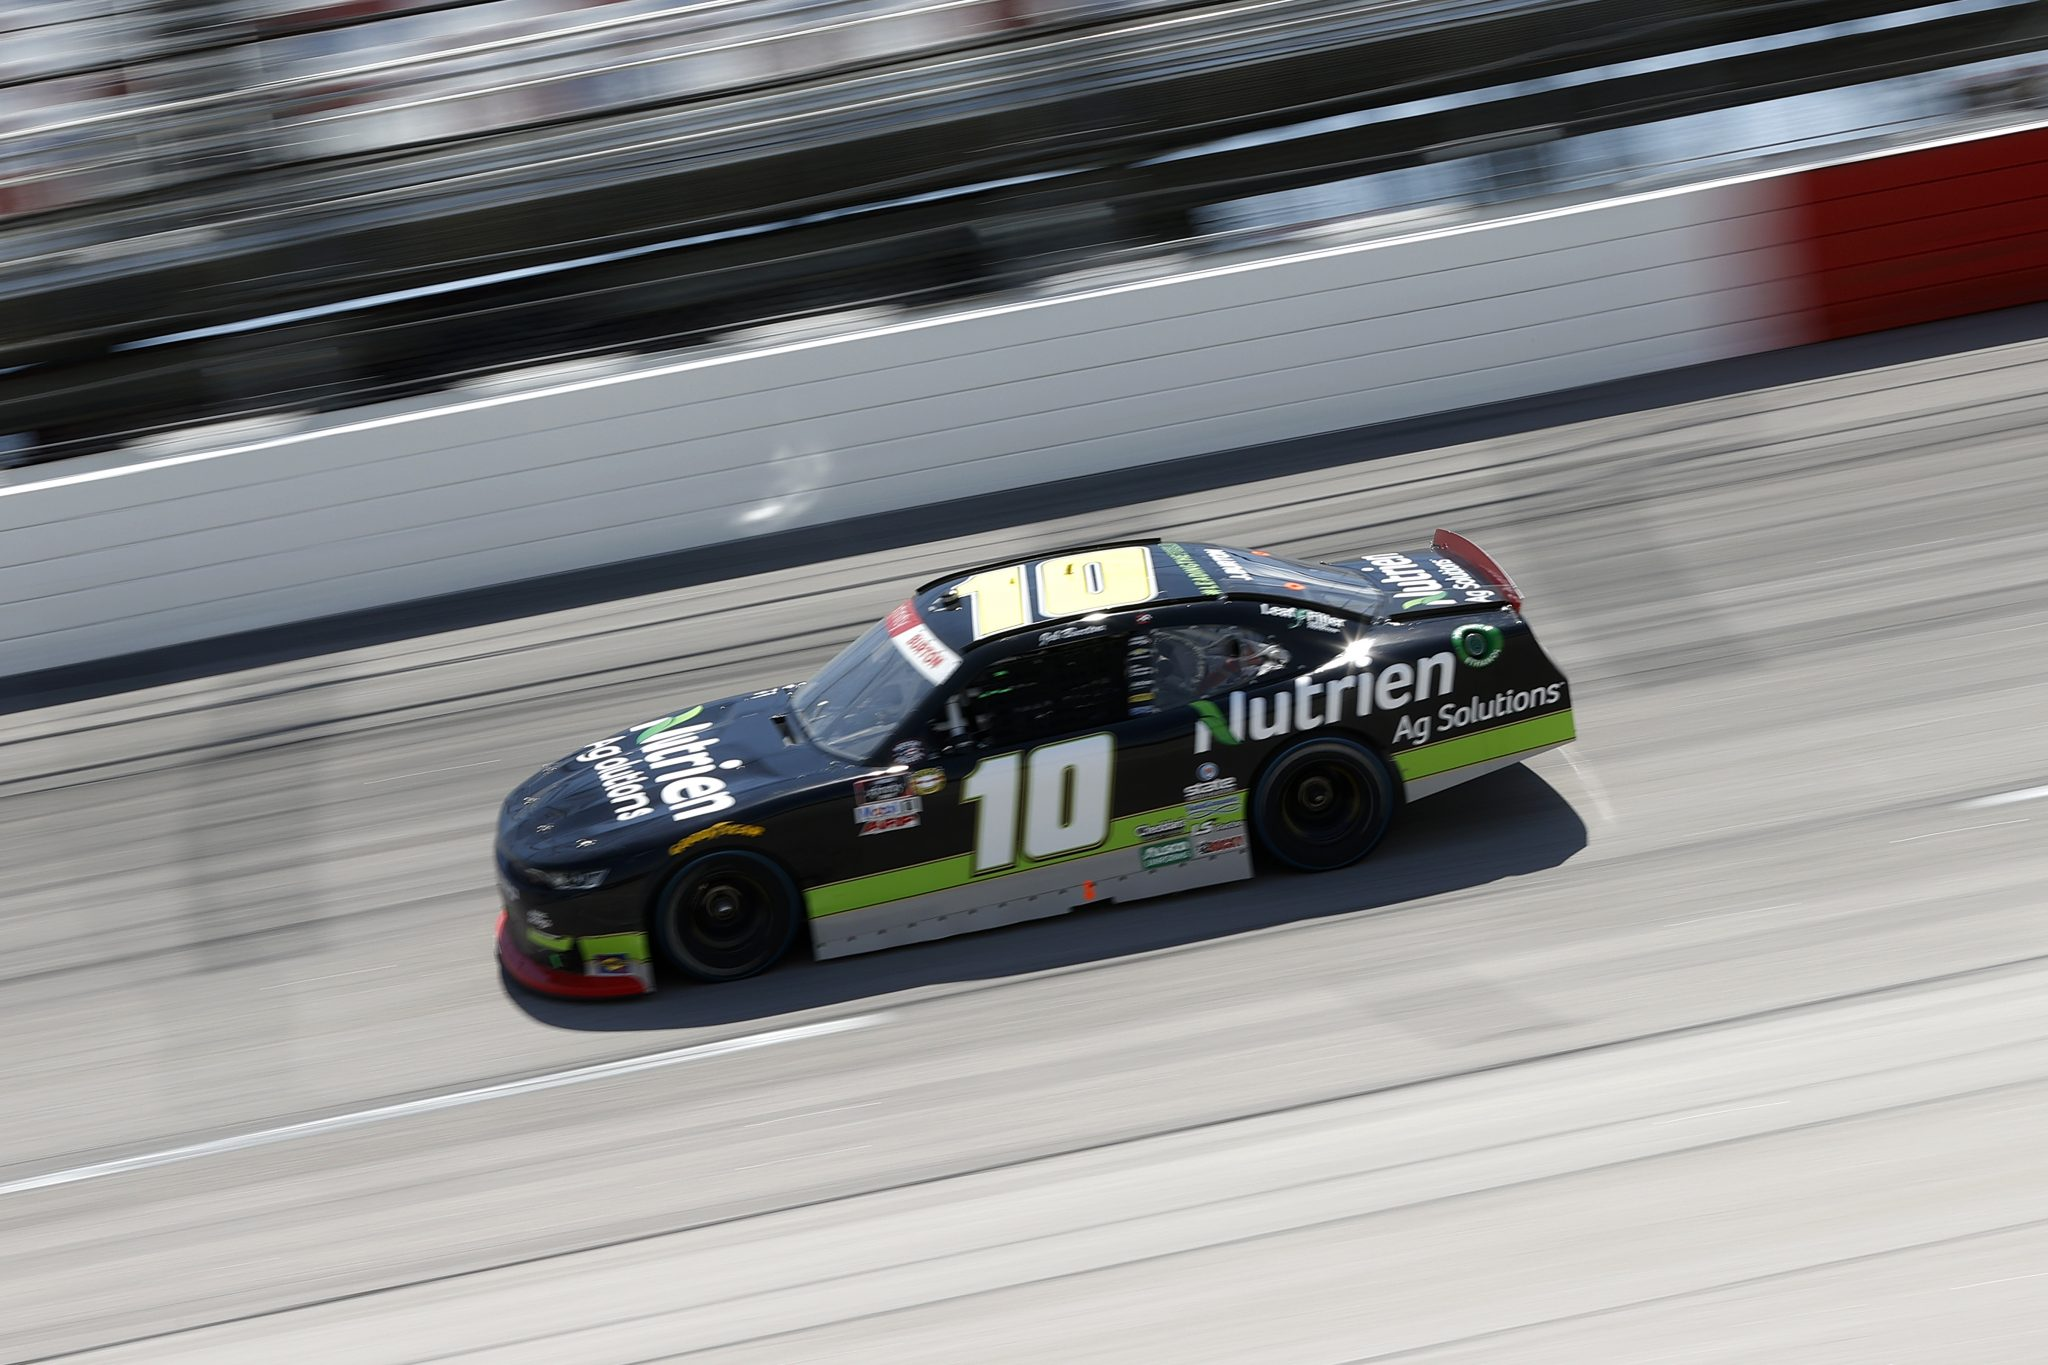 DARLINGTON, SOUTH CAROLINA - MAY 08: Jeb Burton, driver of the #10 Nutrien Ag Solutions Chevrolet, drives during the NASCAR Xfinity Series Steakhouse Elite 200 at Darlington Raceway on May 08, 2021 in Darlington, South Carolina. (Photo by Chris Graythen/Getty Images) | Getty Images